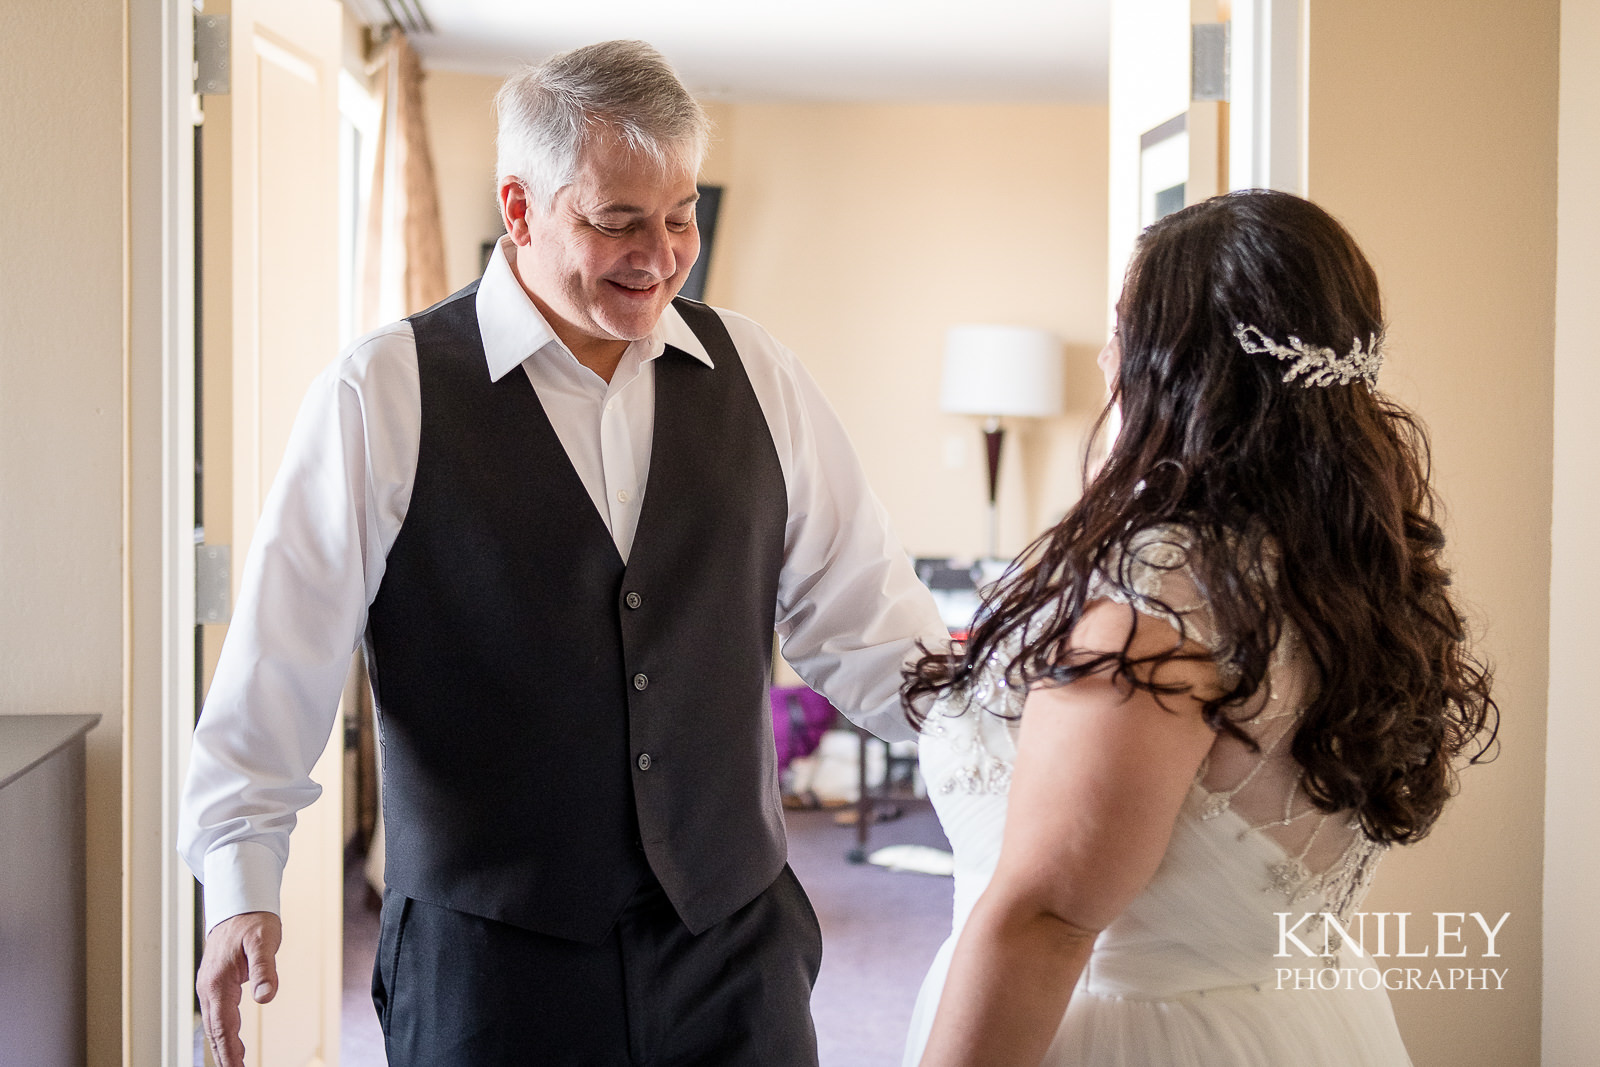 015 - Strathallan Hotel - Rochester NY wedding getting ready pictures - XT2B4372.jpg